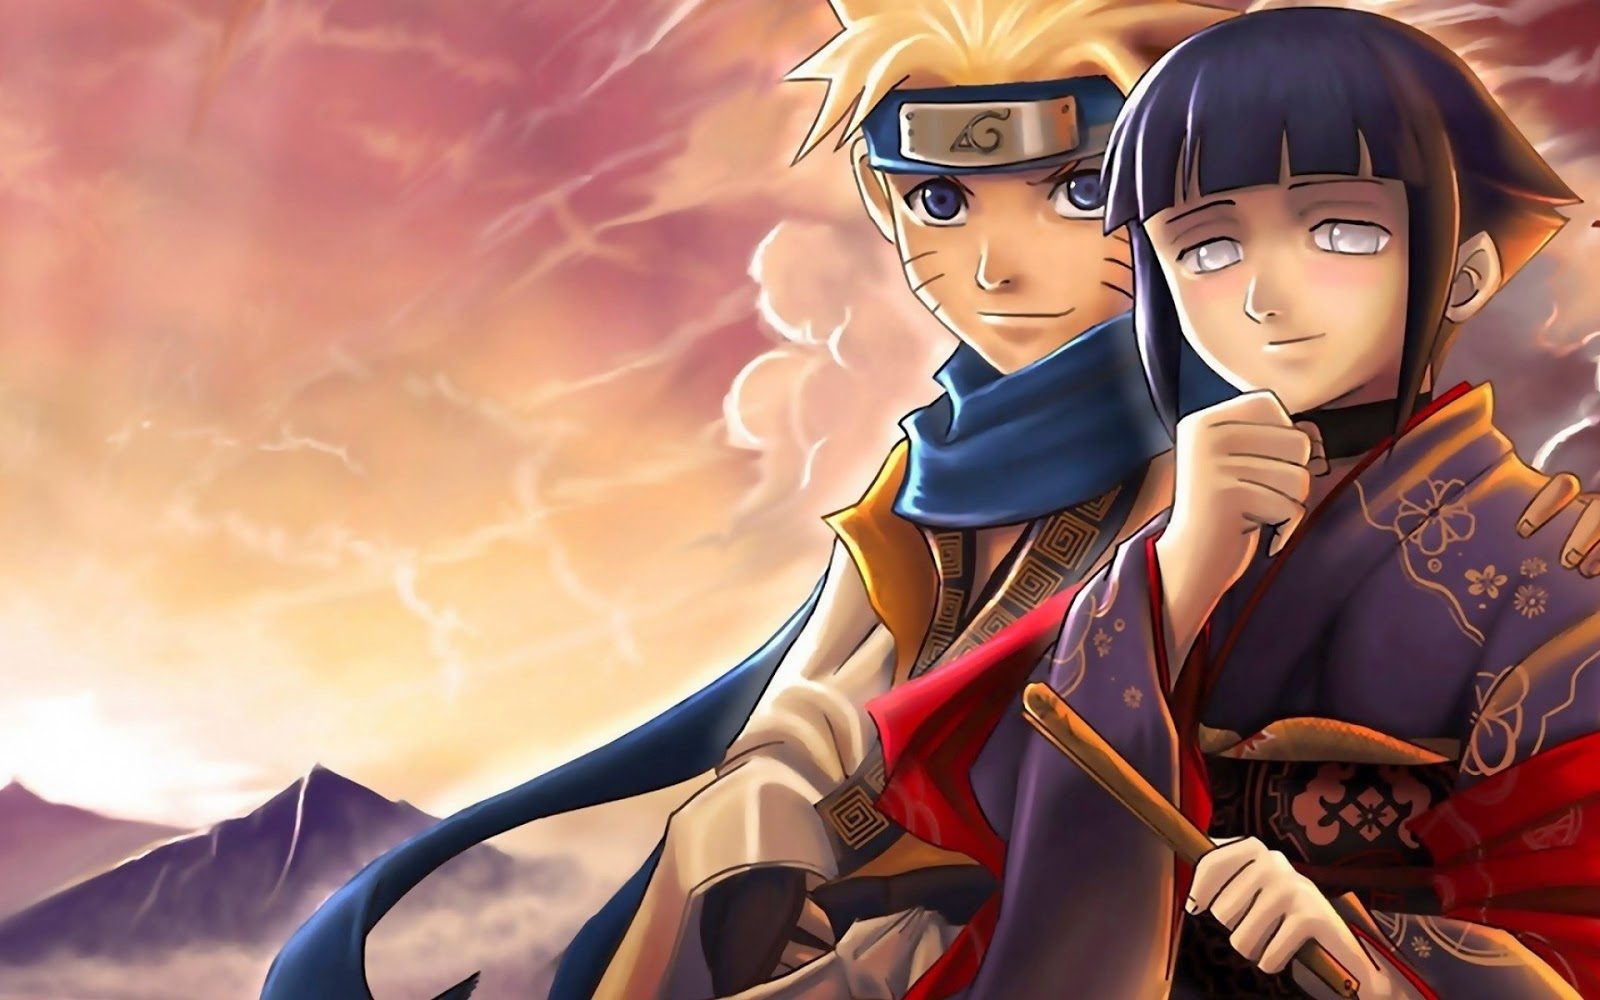 Naruto Shippuden Wallpaper Hd Naruto And Hinata Marriage